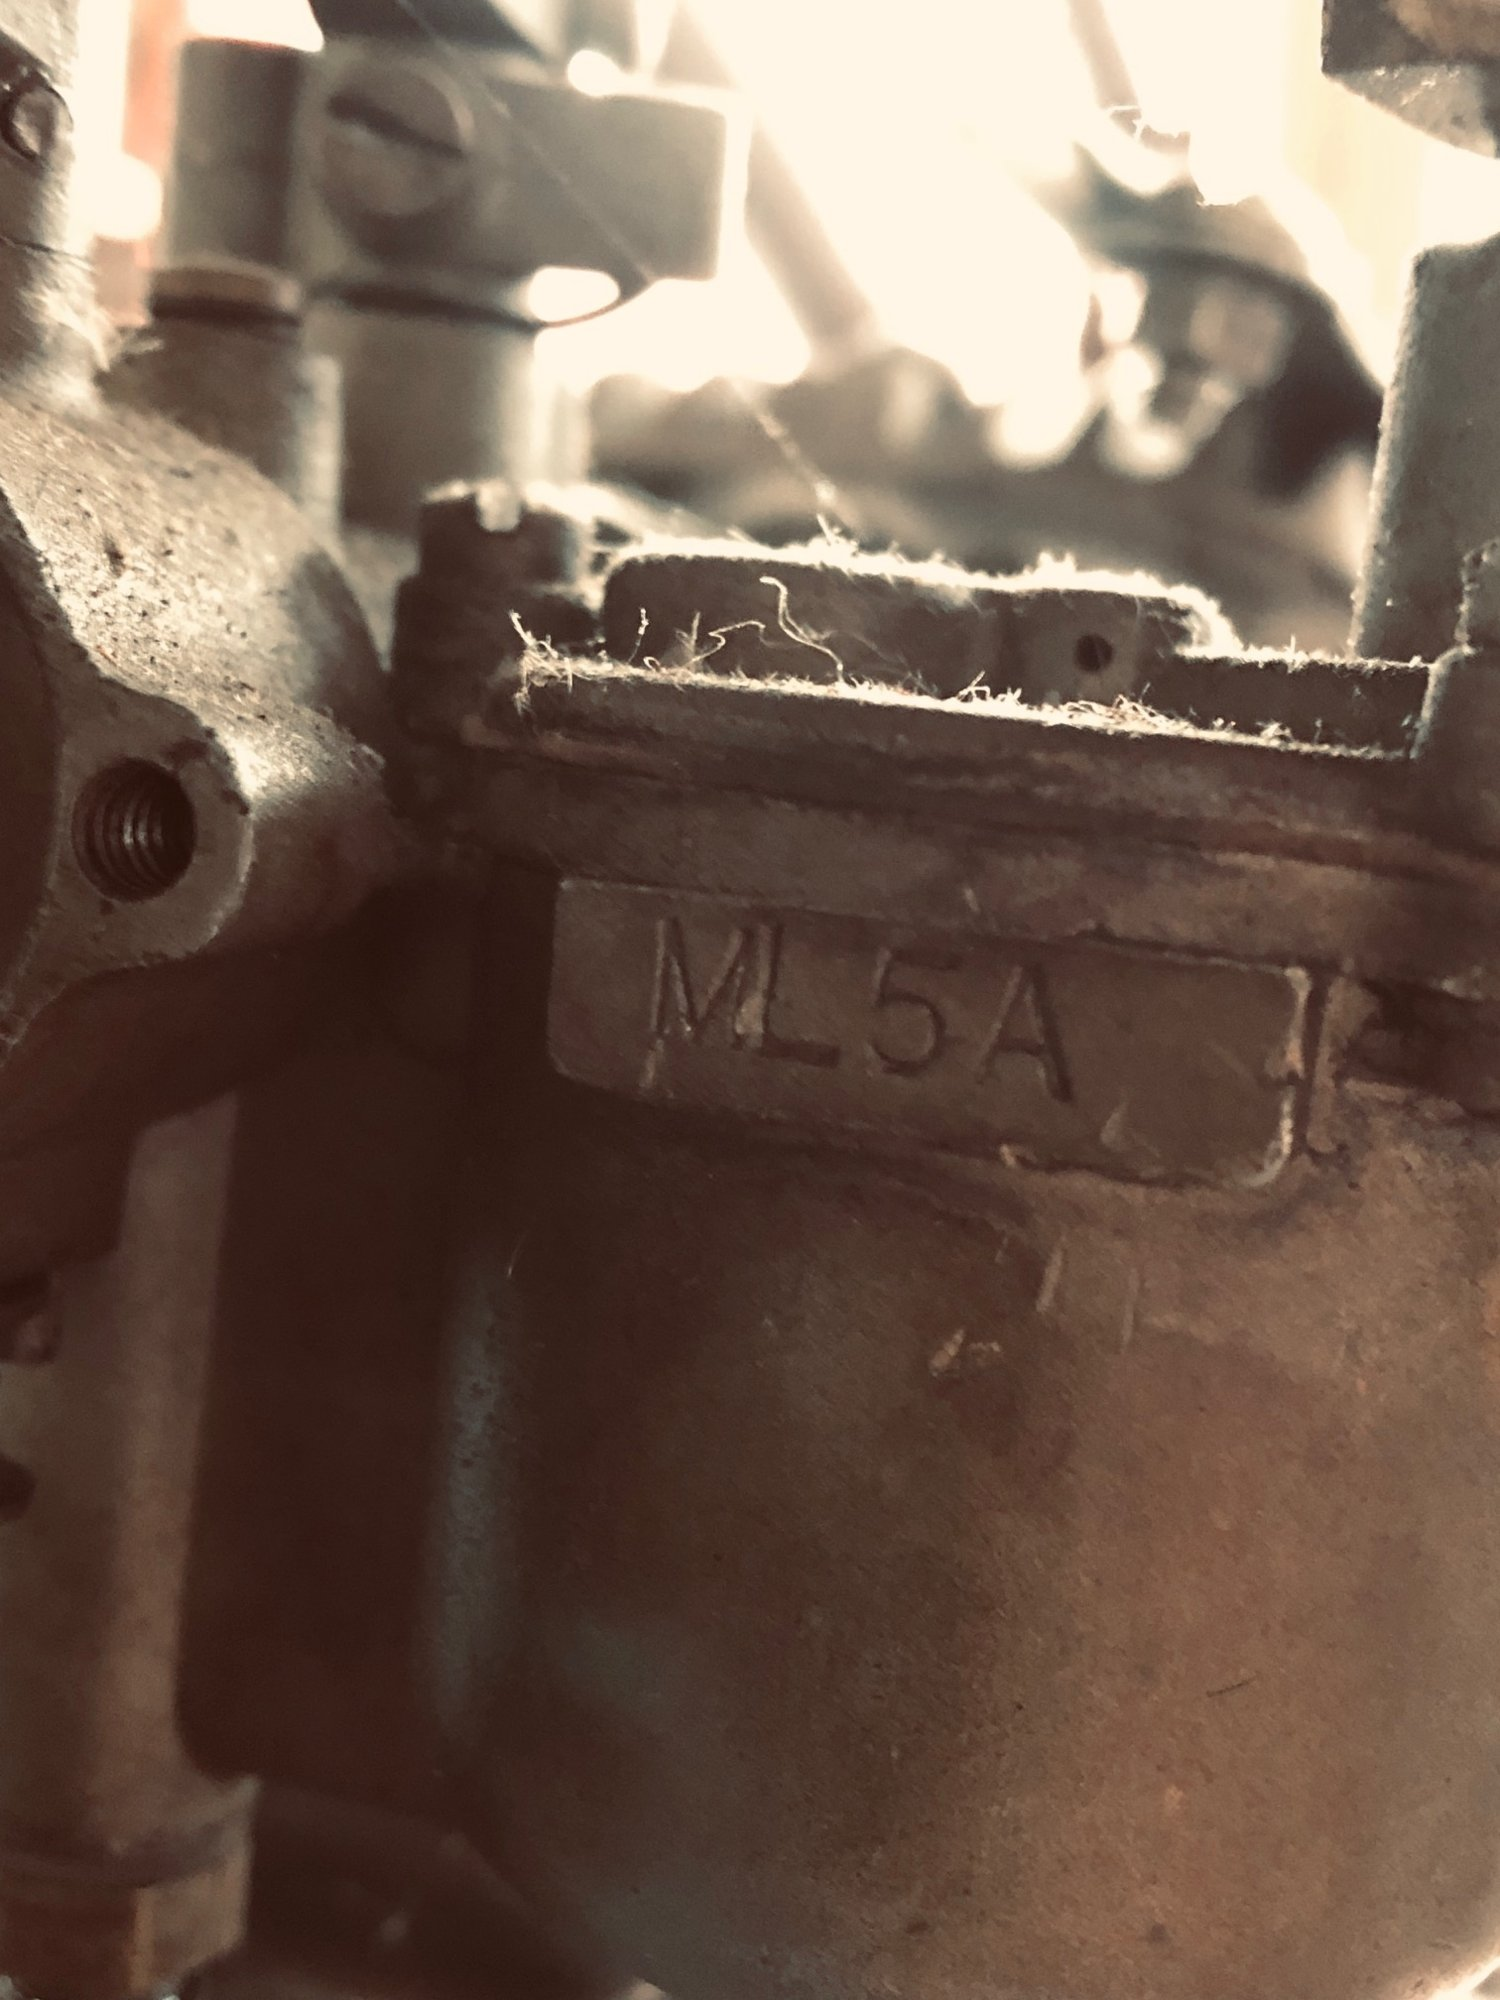 Carburetor. ML5A.jpg